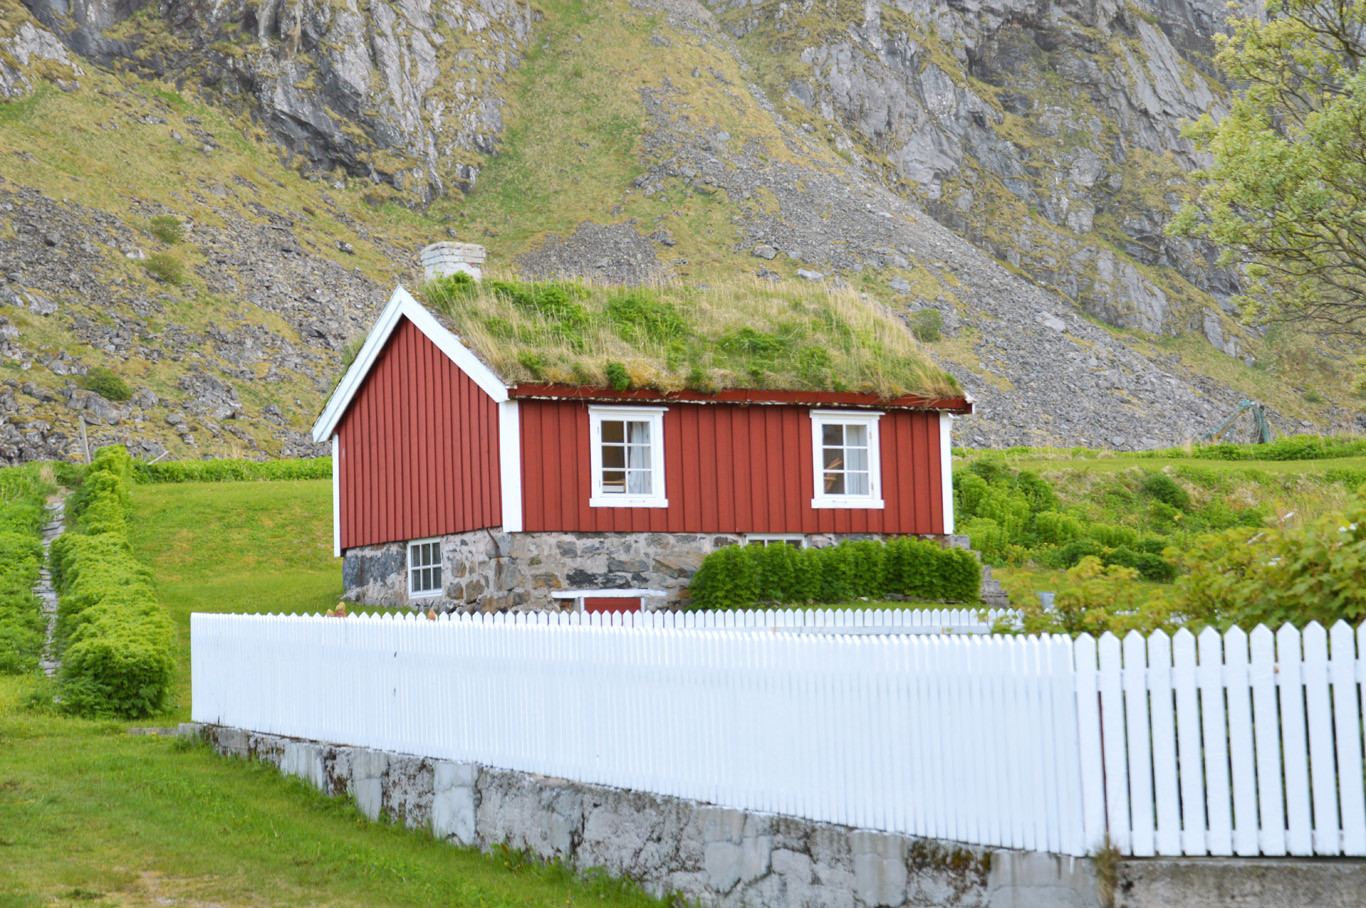 Local house in Nordland